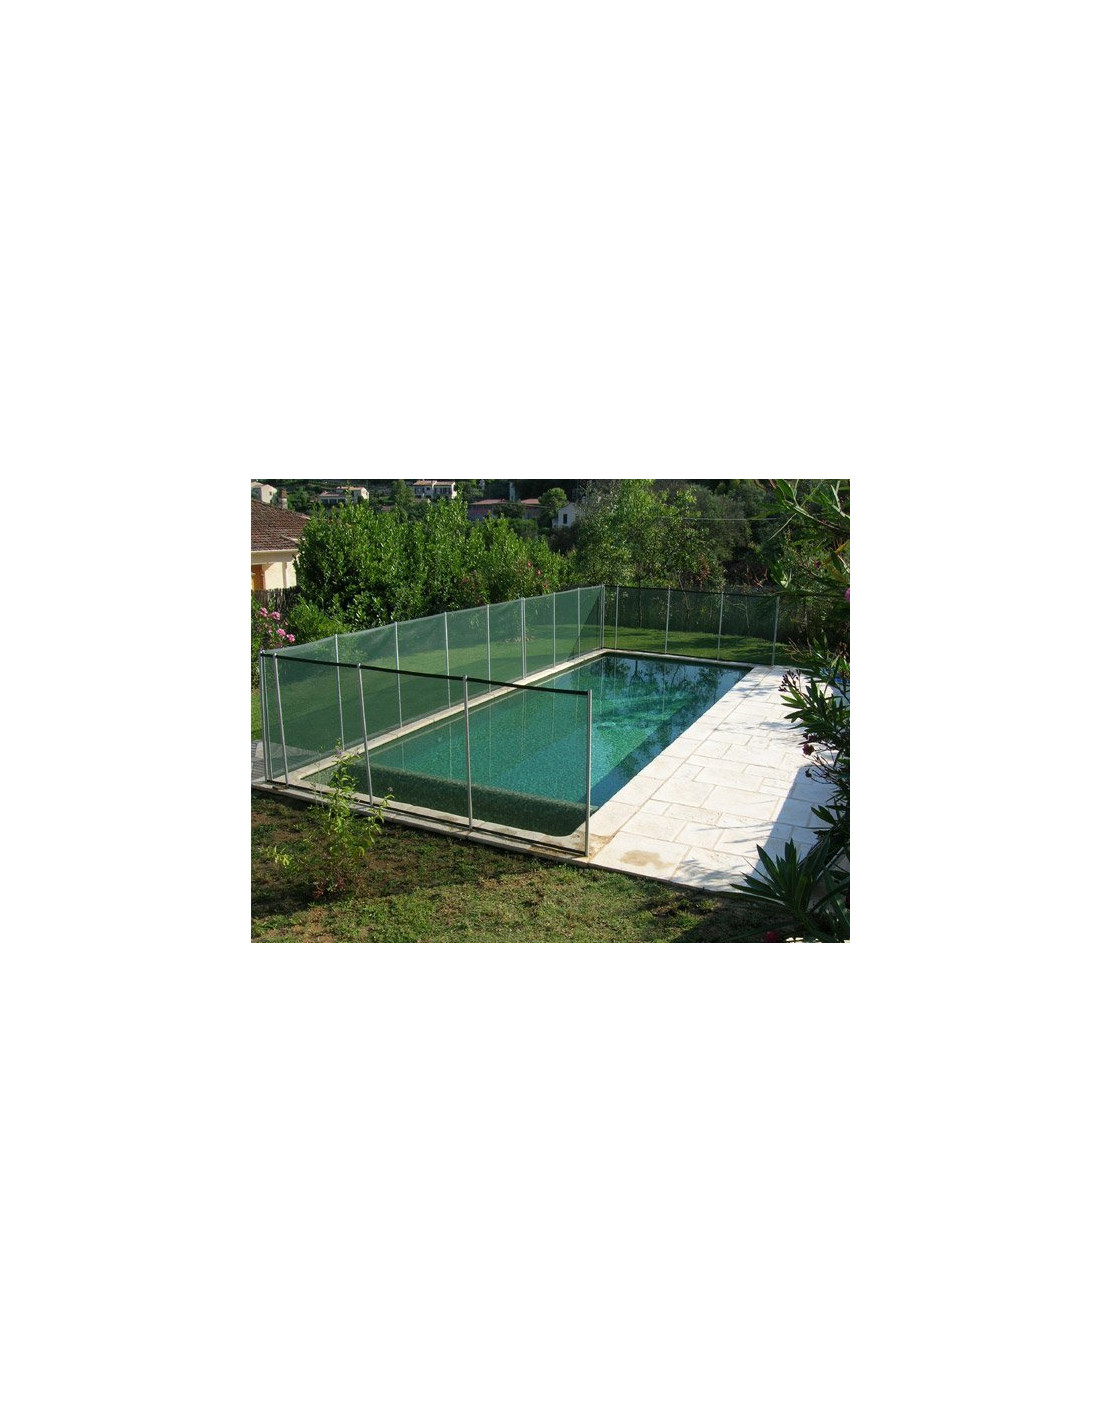 Barri re de piscine beethoven verte avec piquets anodis s for Barrieres piscine beethoven